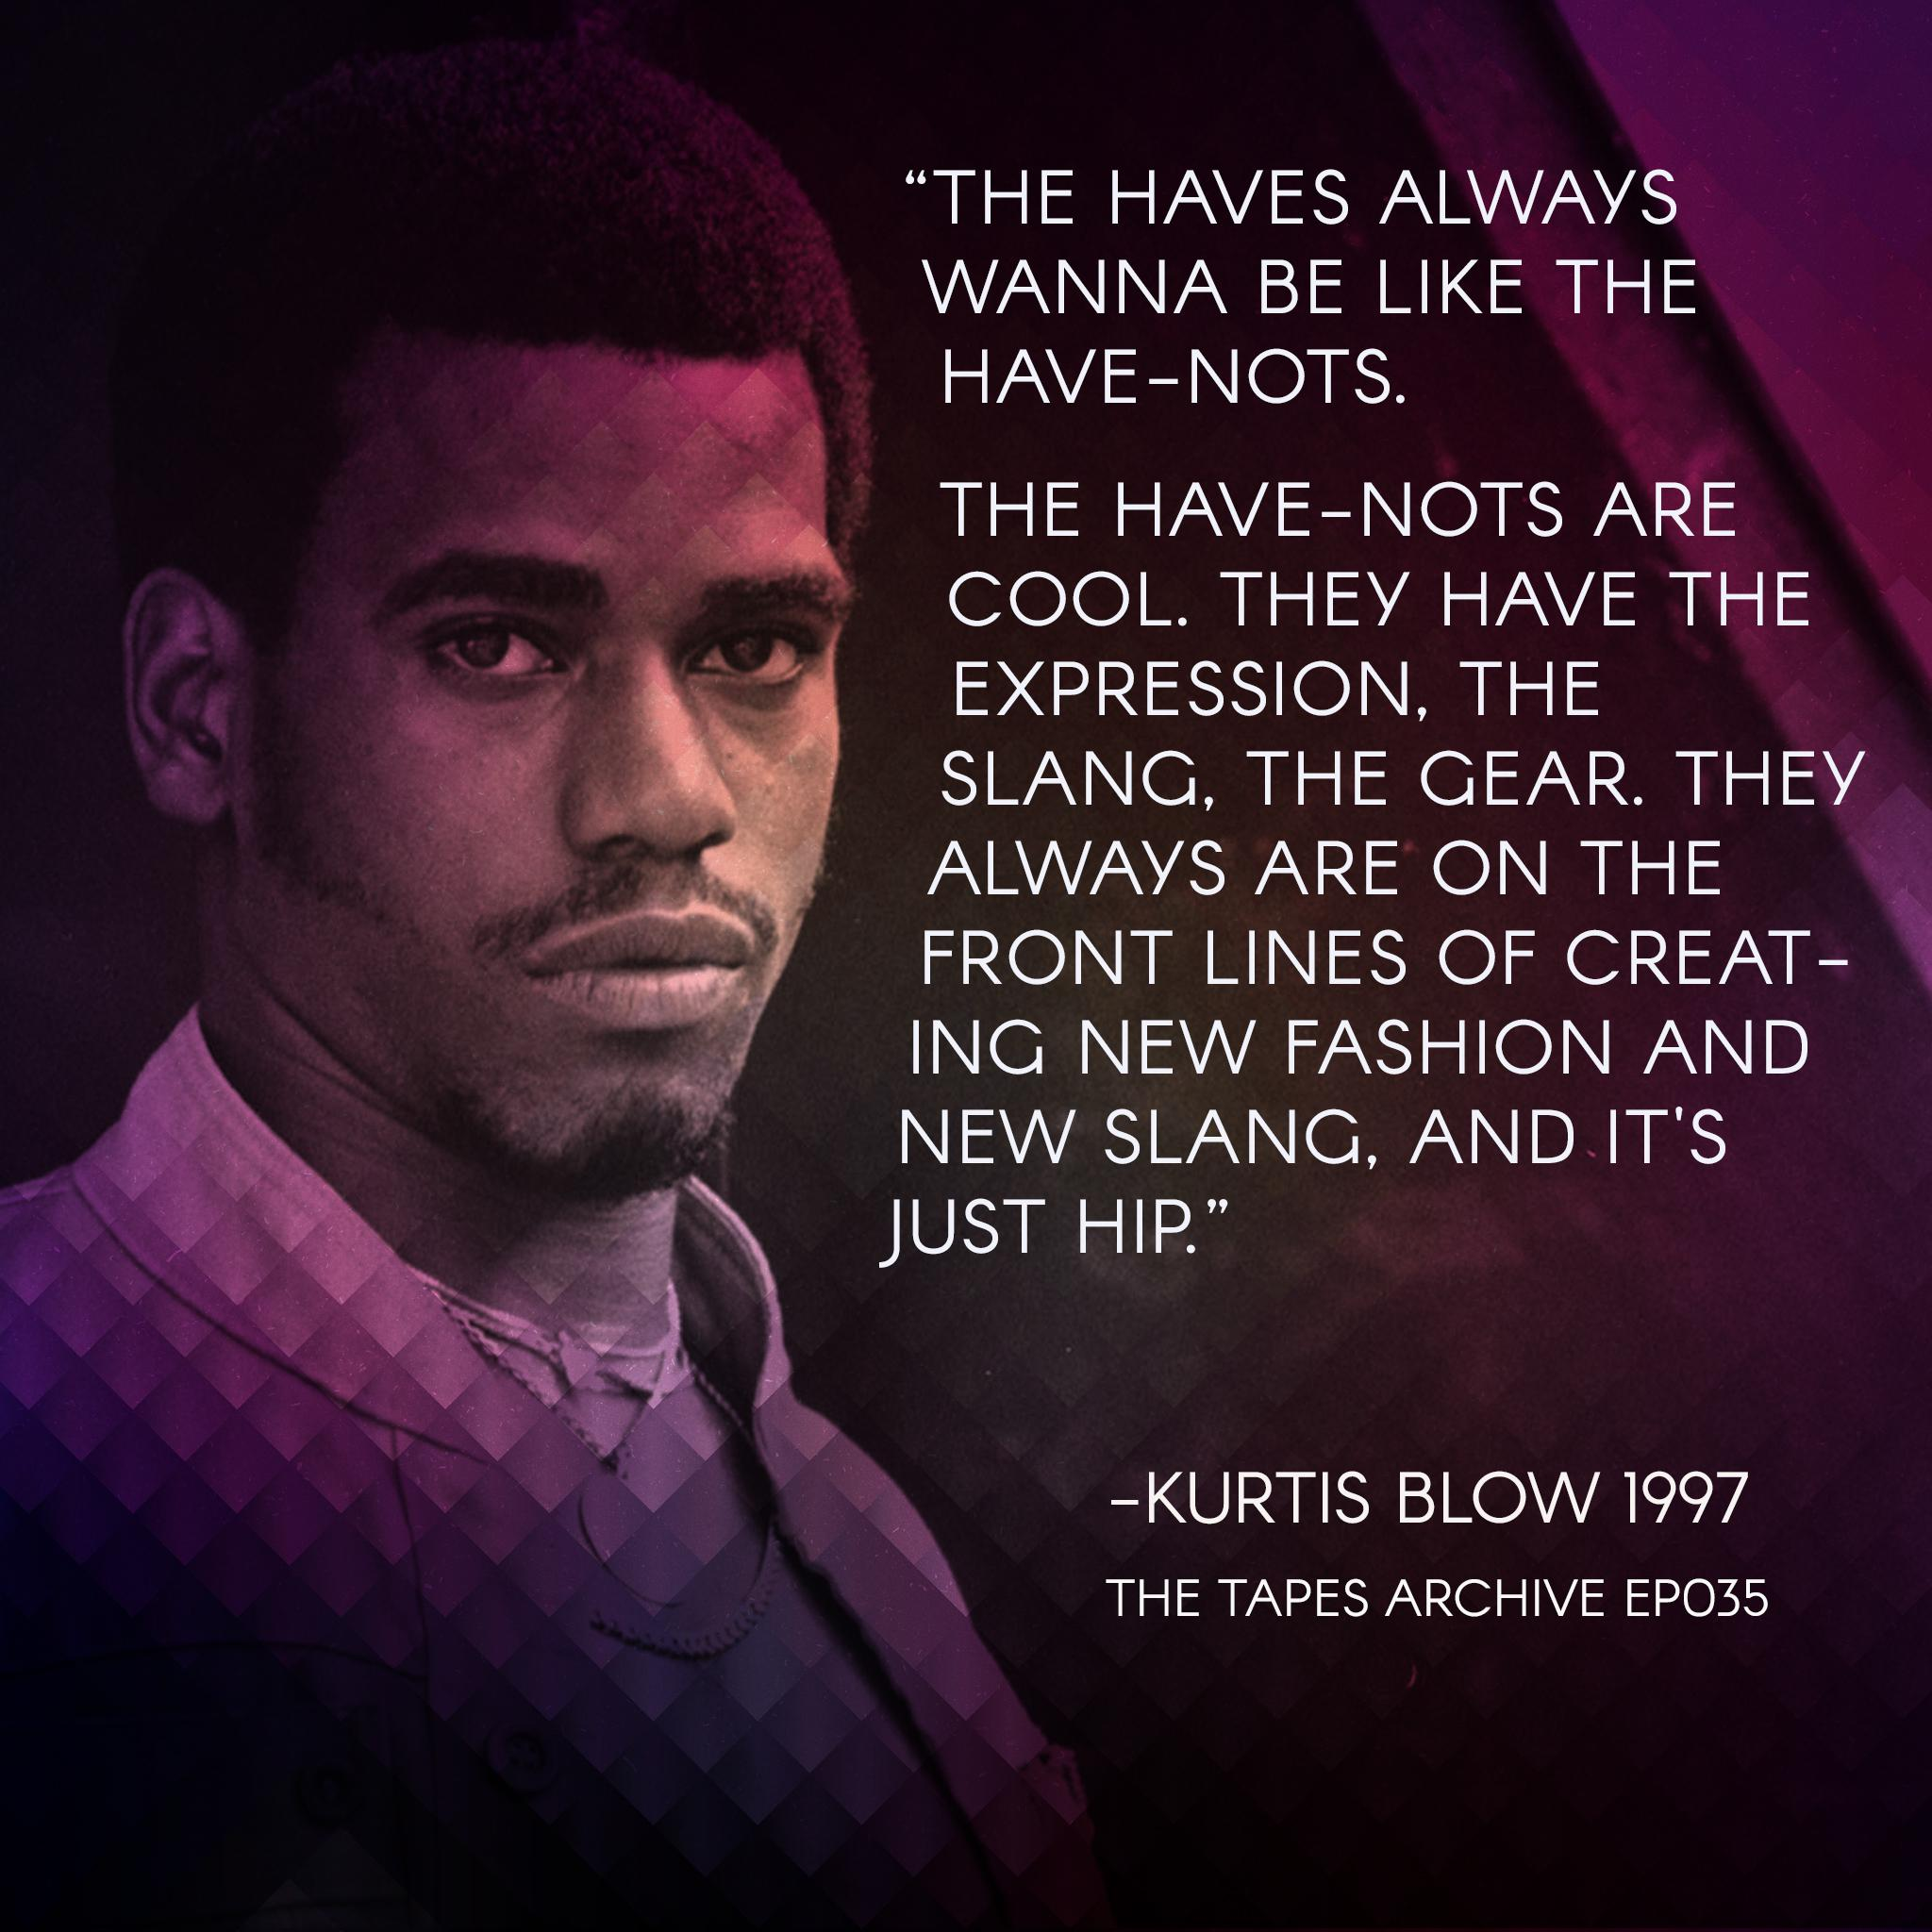 """The Haves always wanna be like the have-nots…"" Kurtis Blow 1997 [2048×2048]"